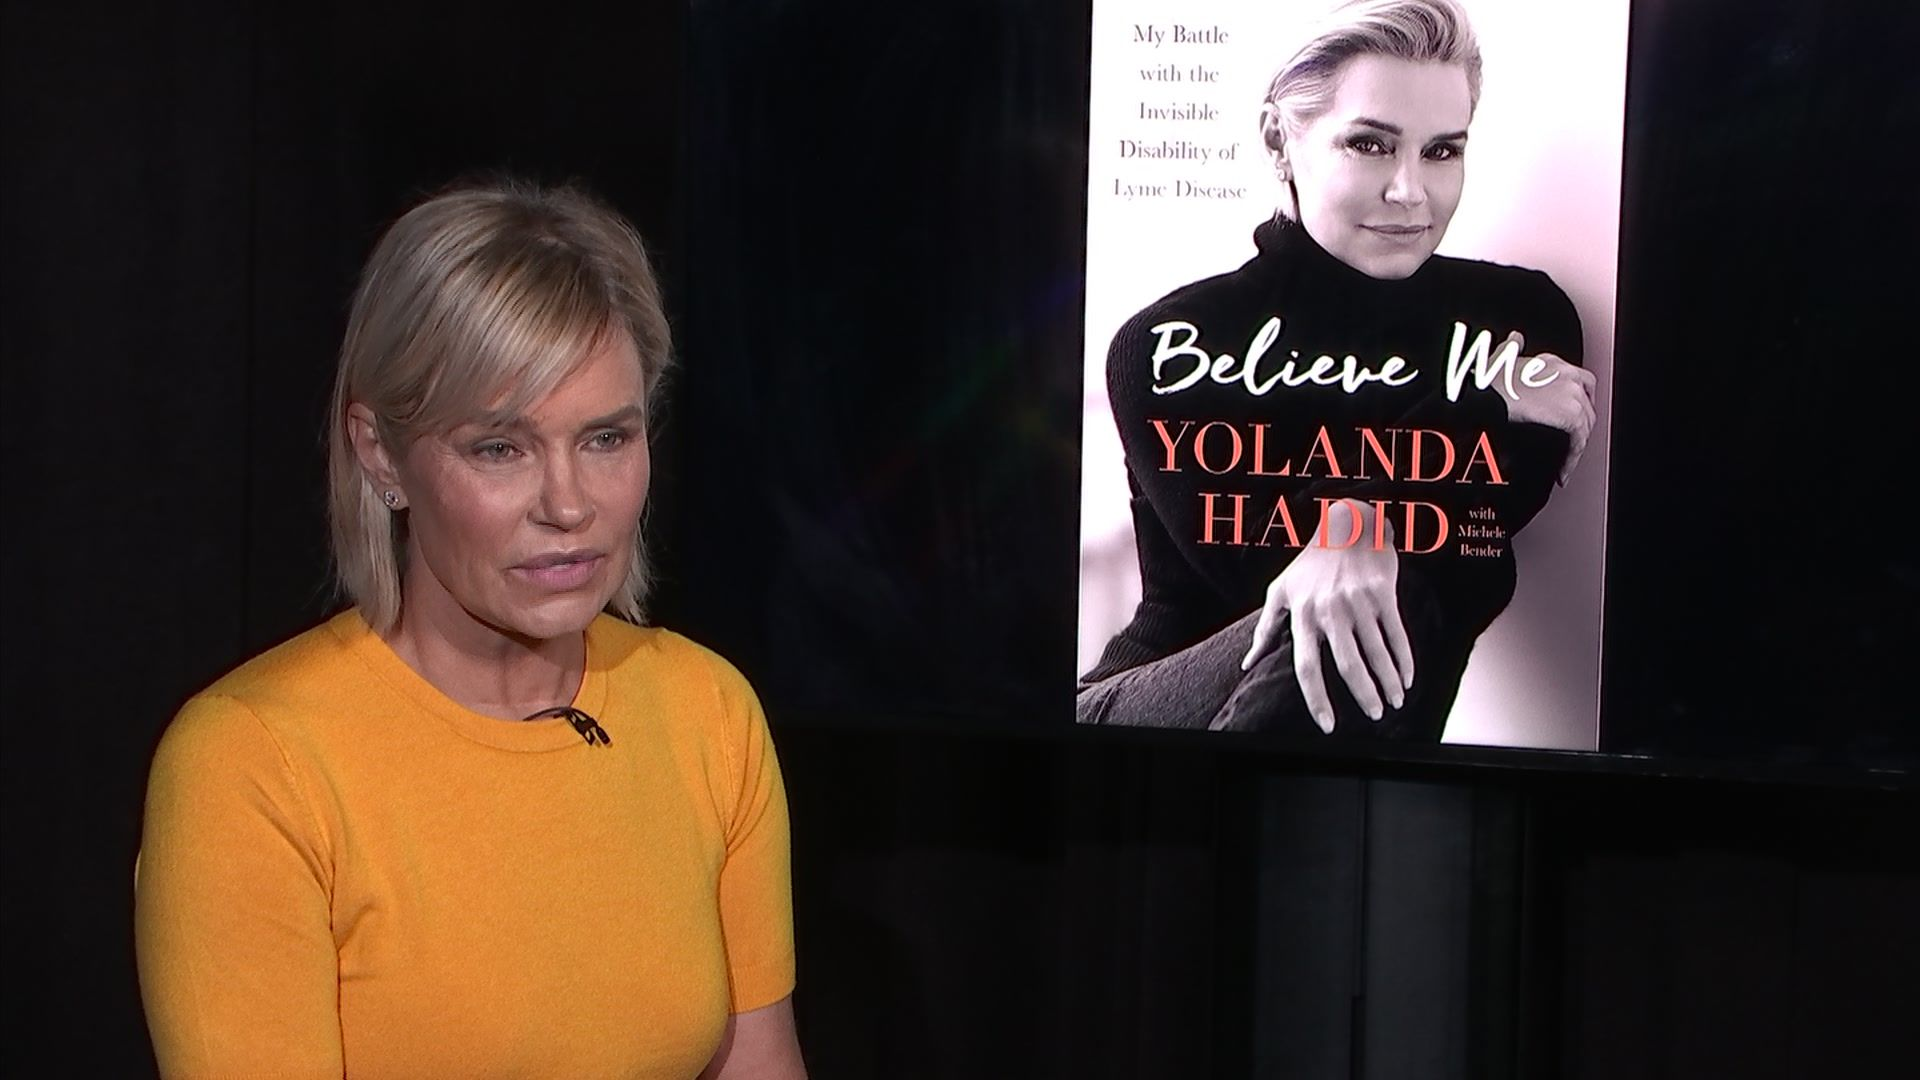 Yolanda Hadid's Lyme Disease Is In Remission Years After Losing Ability to Read and Write